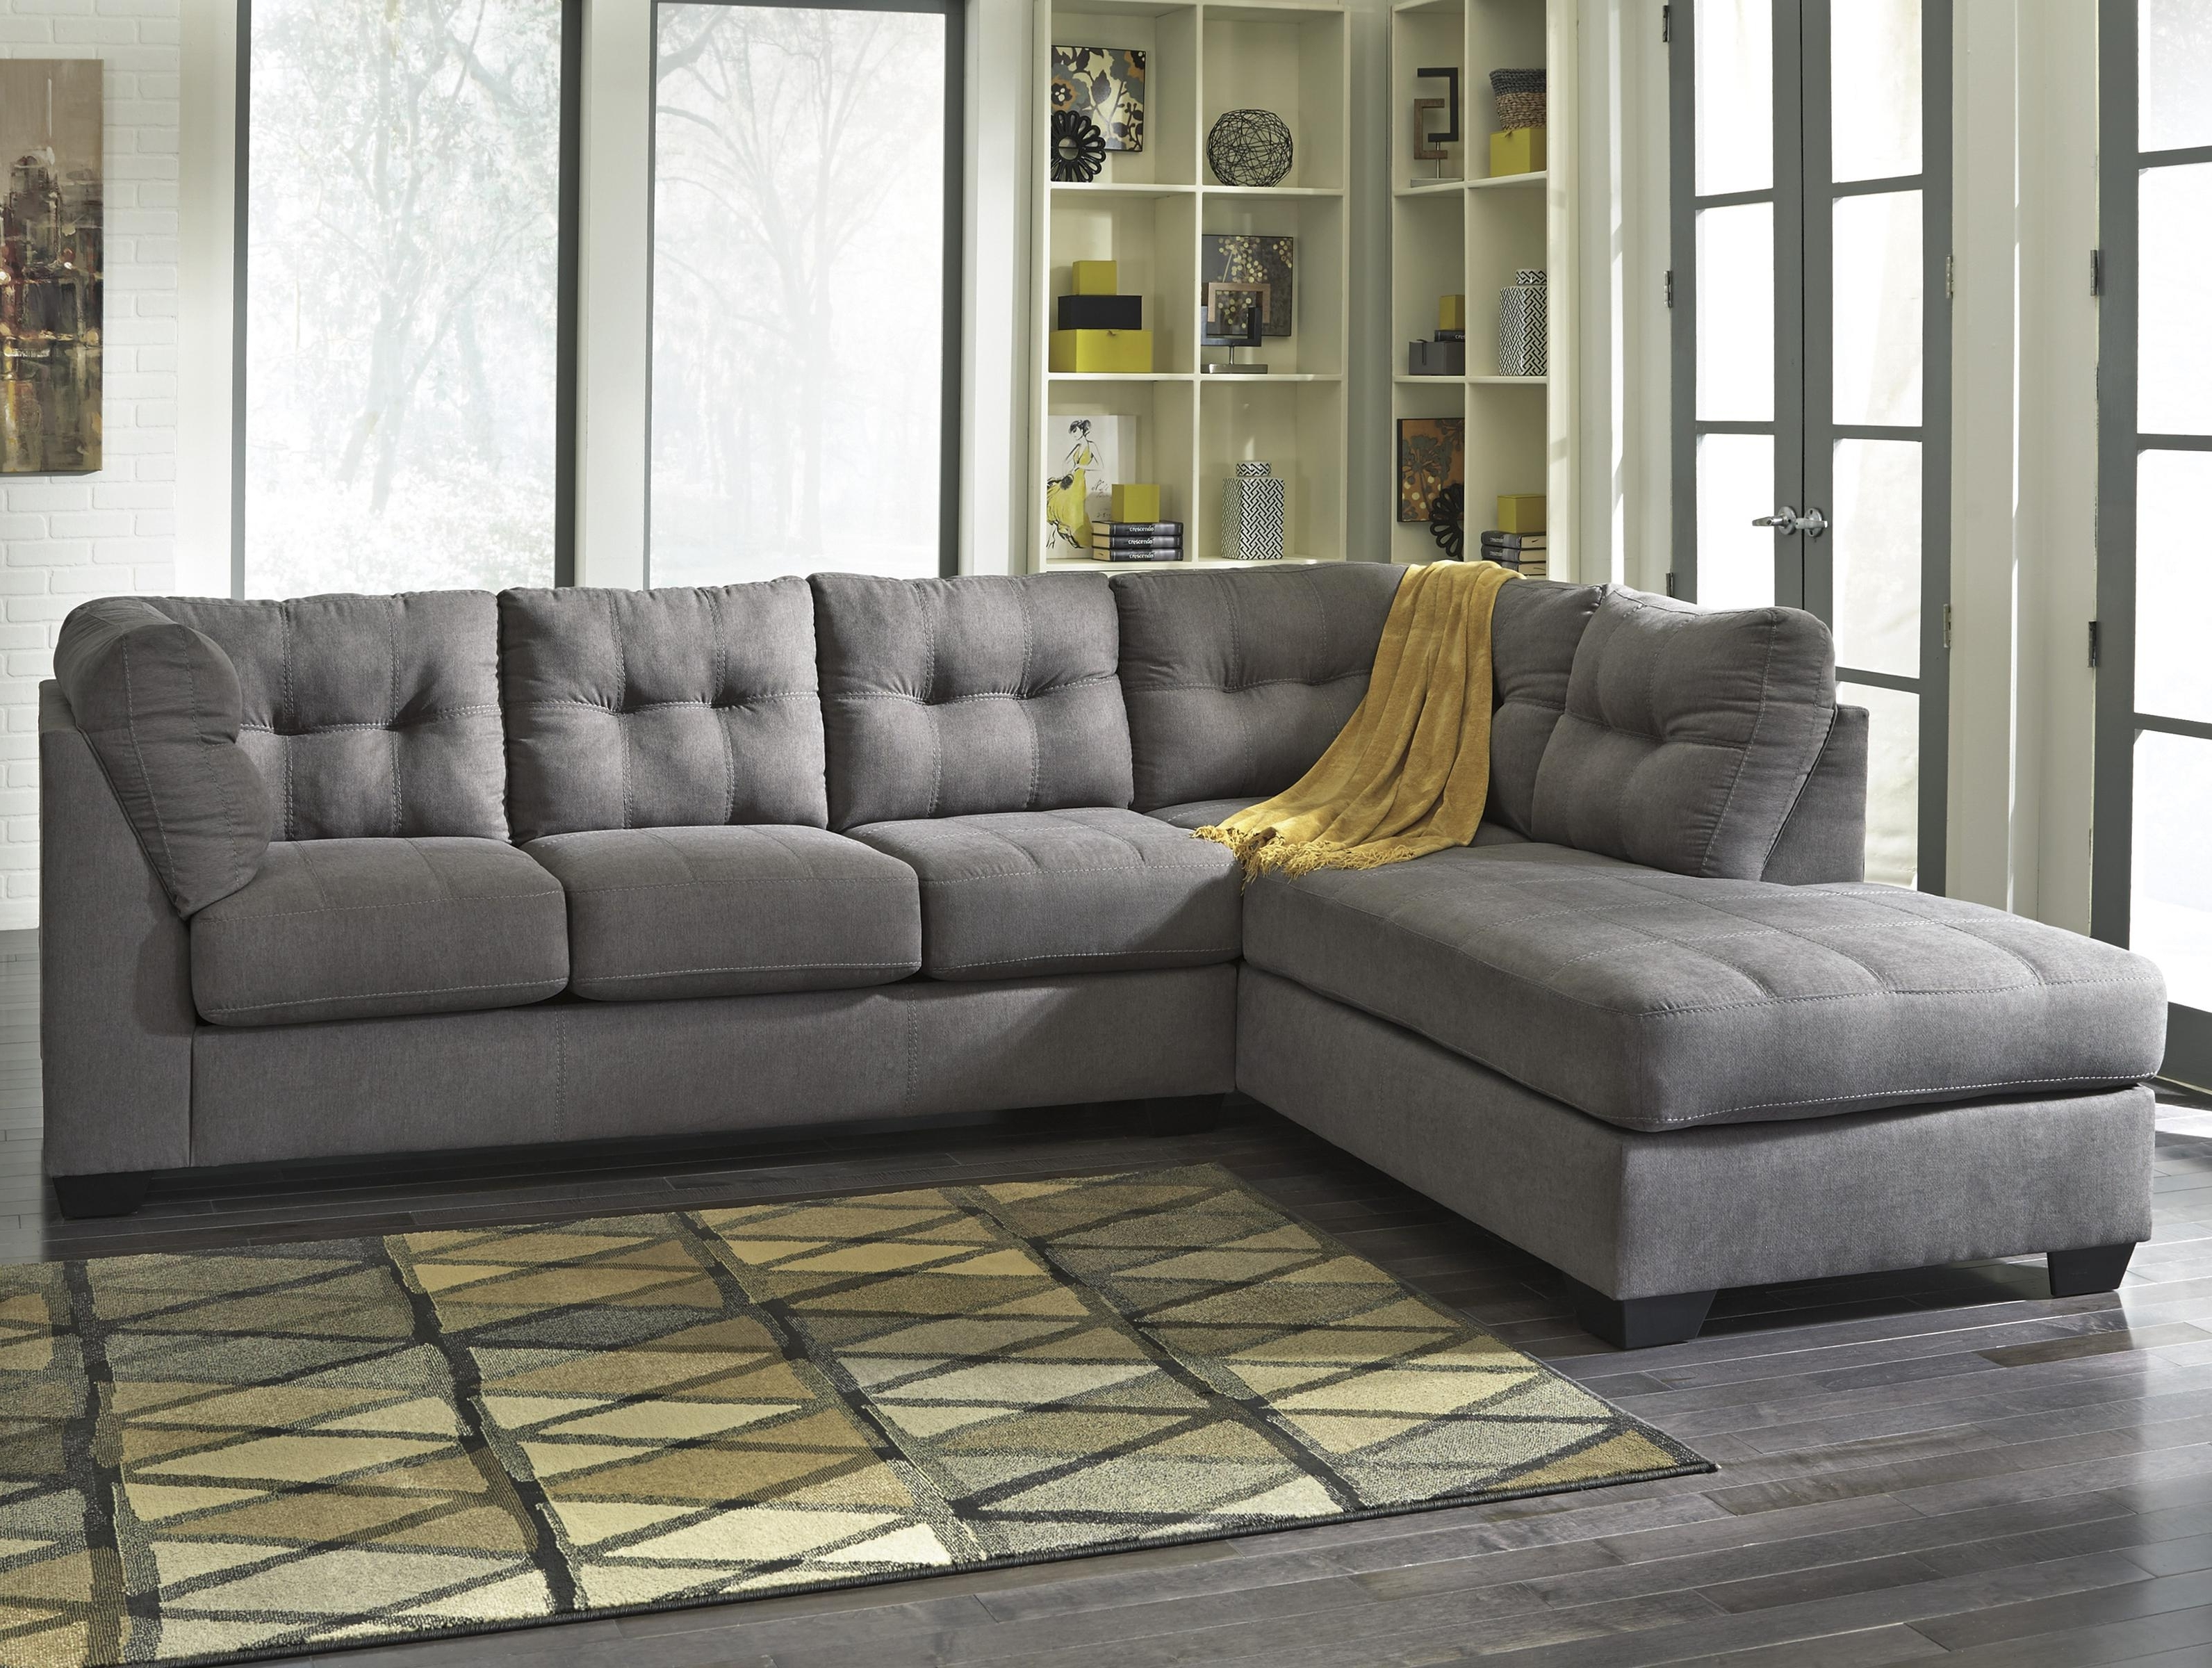 Benchcraft Maier – Charcoal 2 Piece Sectional With Left Chaise Regarding Newest Gray Couches With Chaise (View 13 of 15)